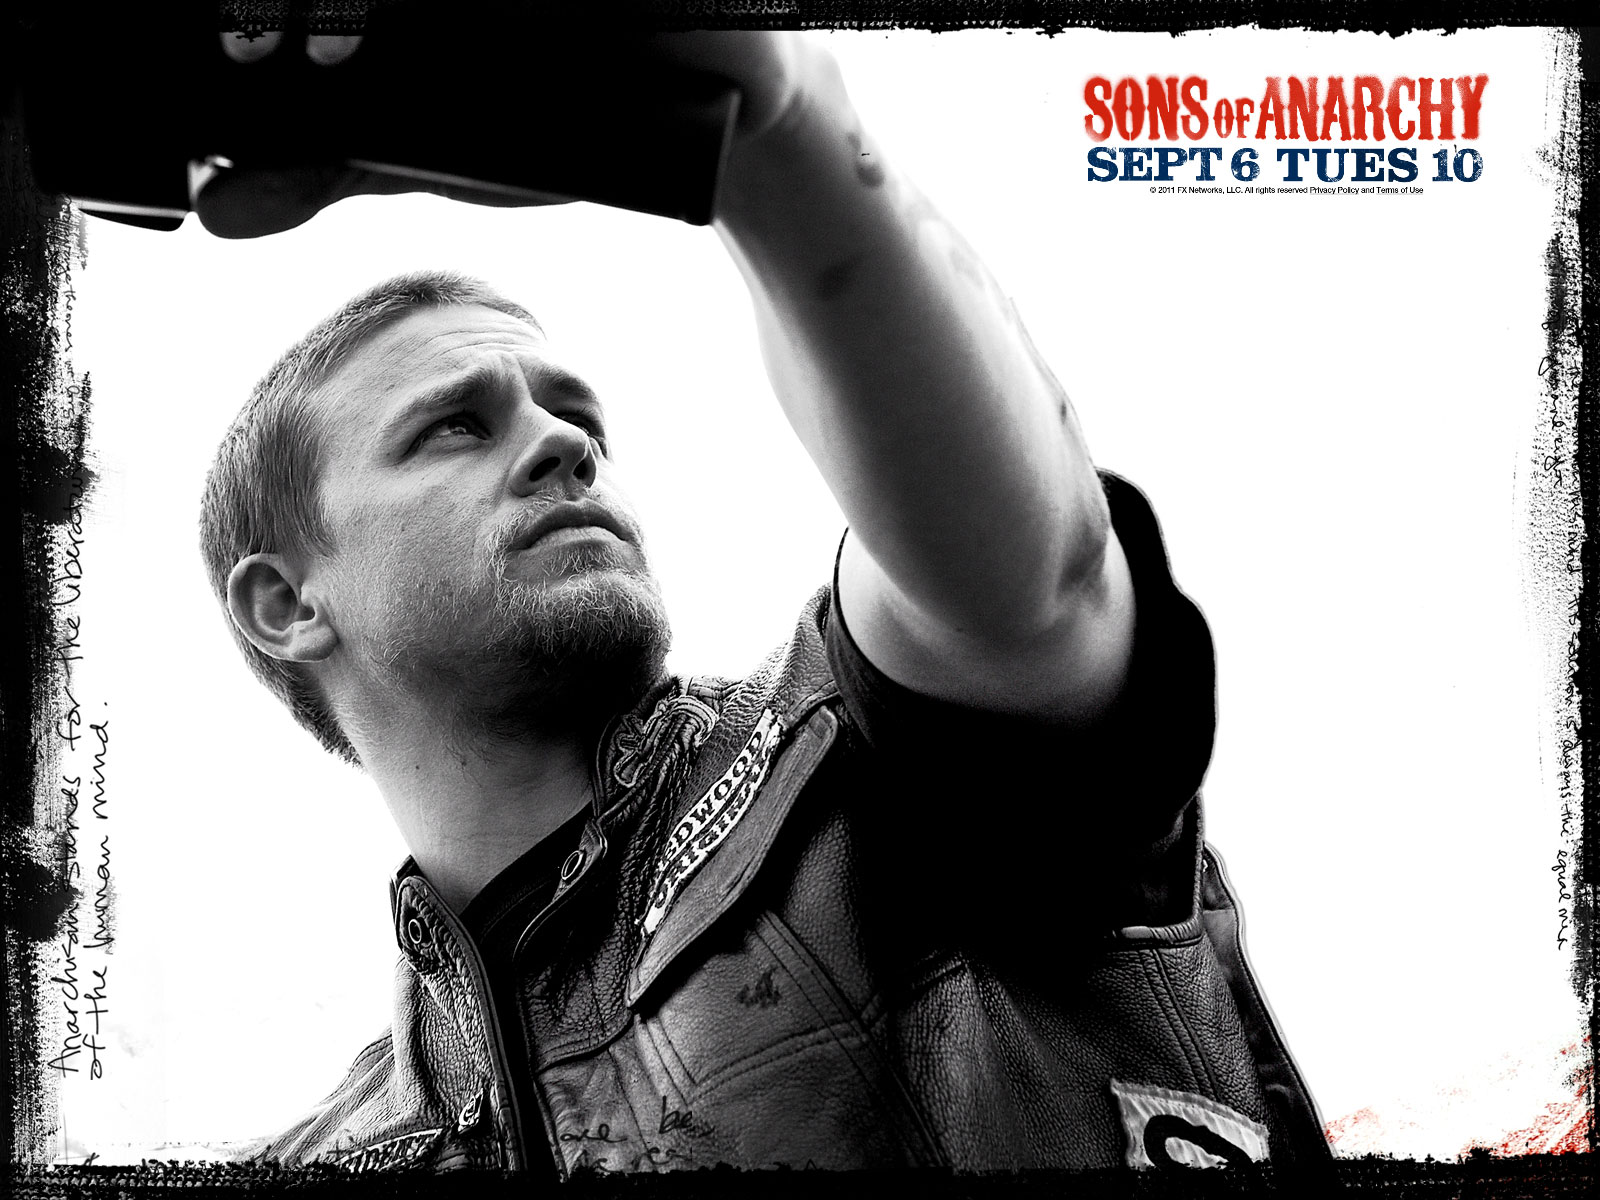 Charlie Hunnam Sons of Anarchy 1600x1200